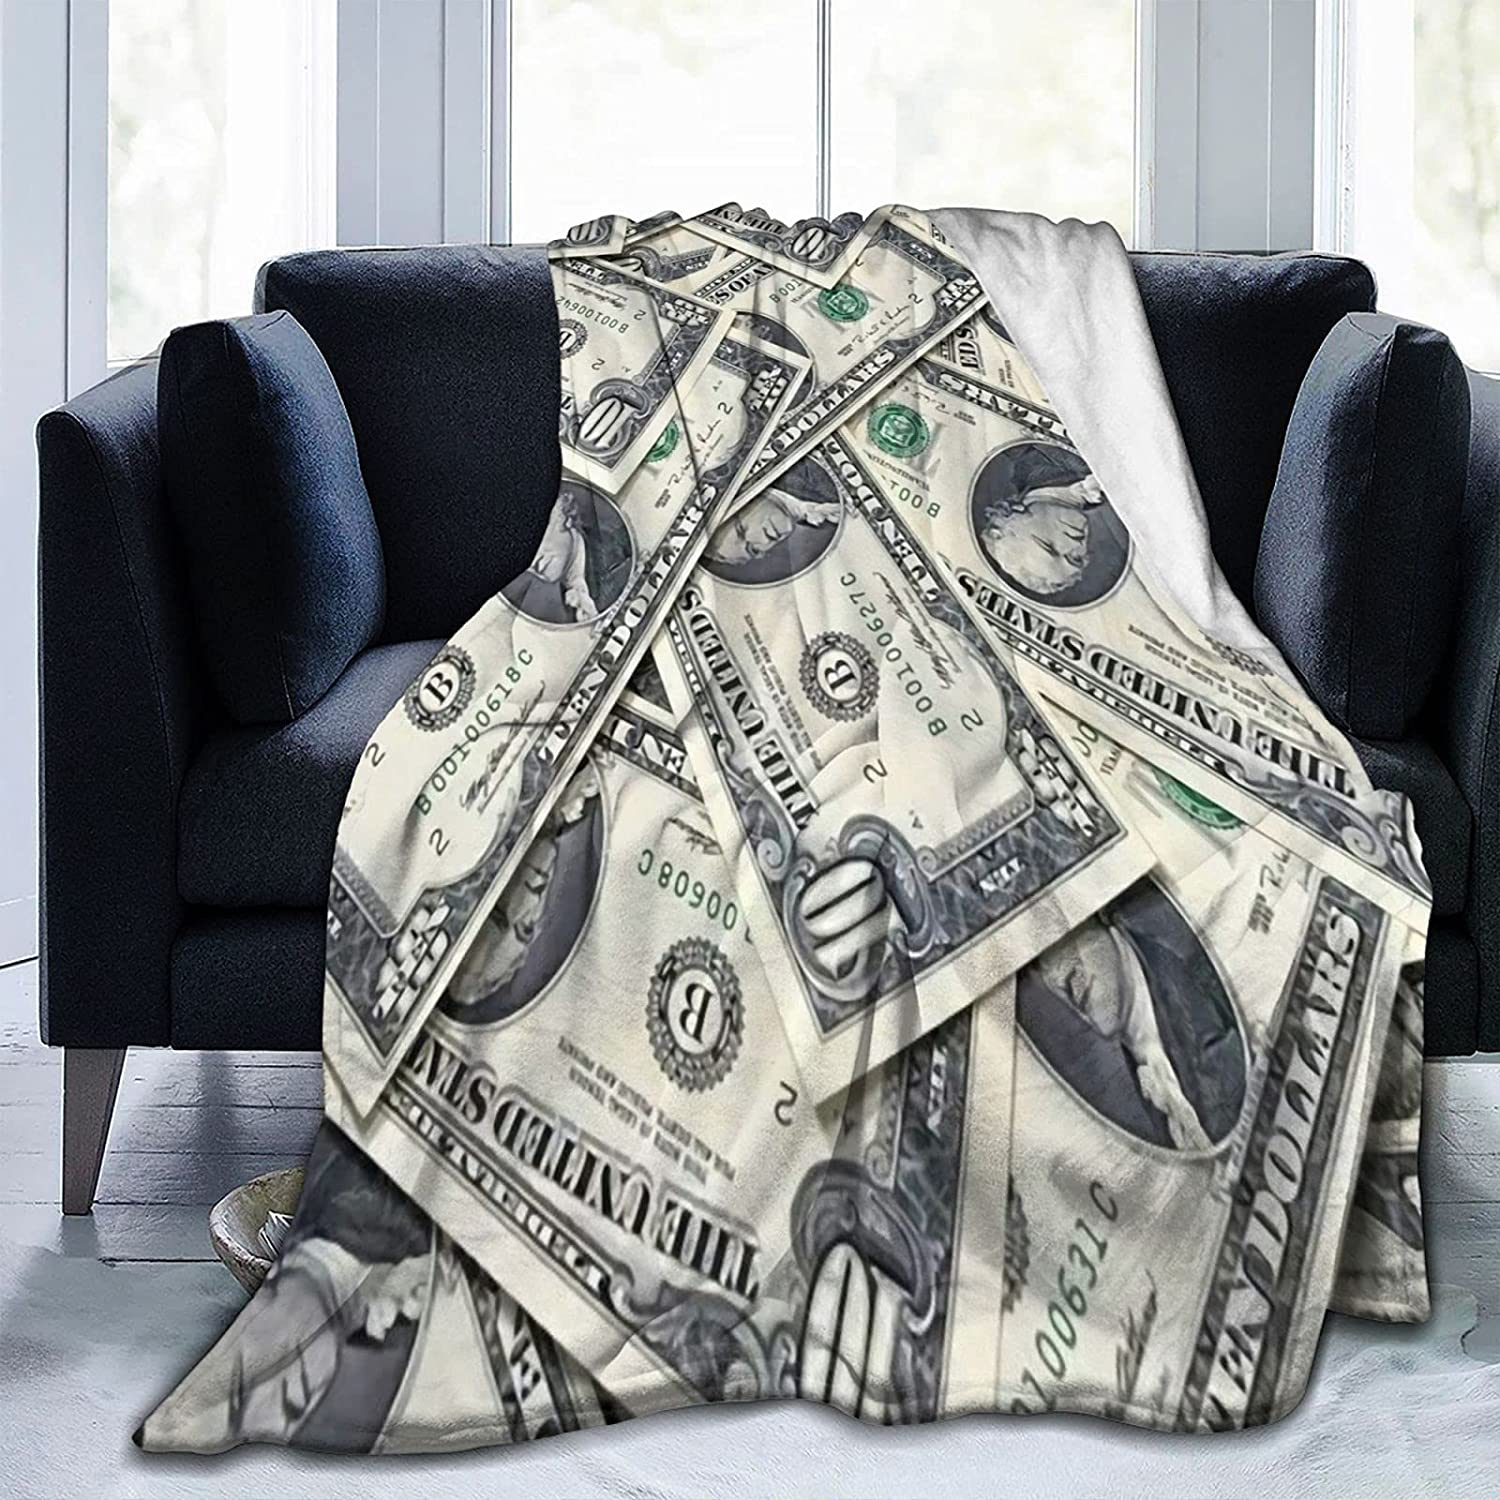 Cash Money Dollars Super Special SALE held Ultra-Soft Micro Throw Blanket Limited time trial price Sea All Fleece